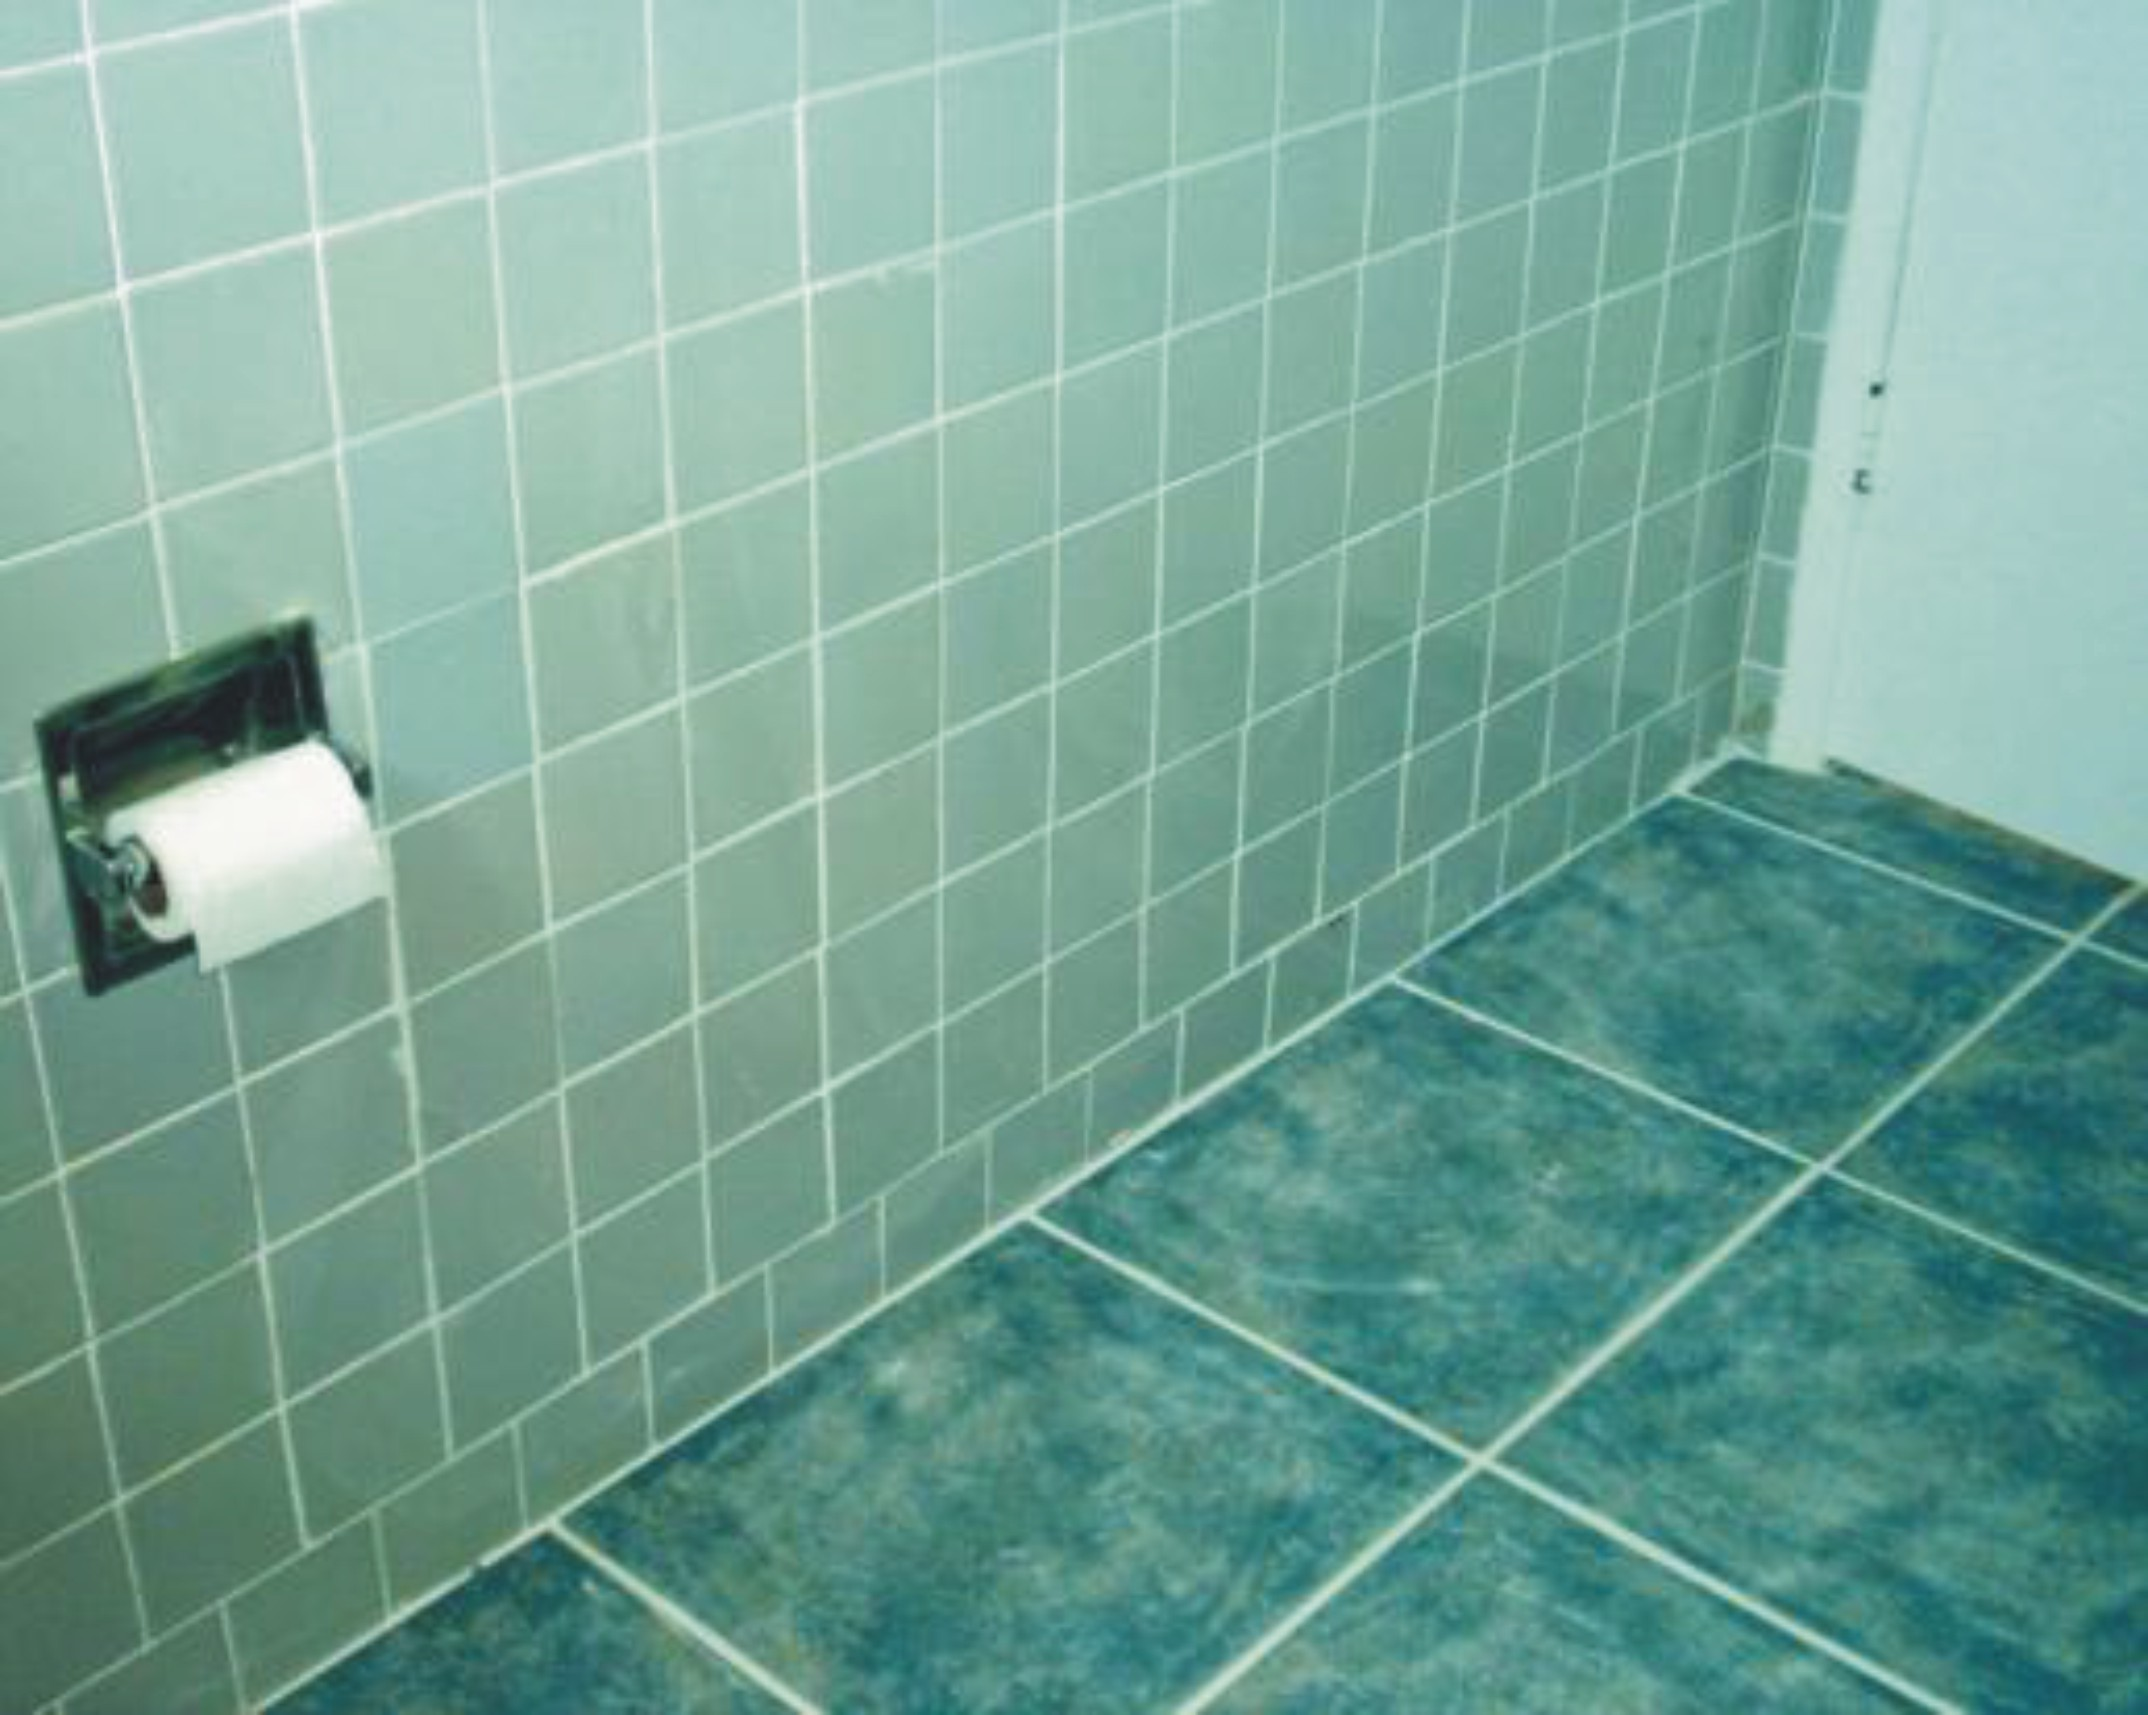 FAIRFIX TGG: COST EFFECTIVE PIGMENTED TILE GROUT | FAIRMATE ...